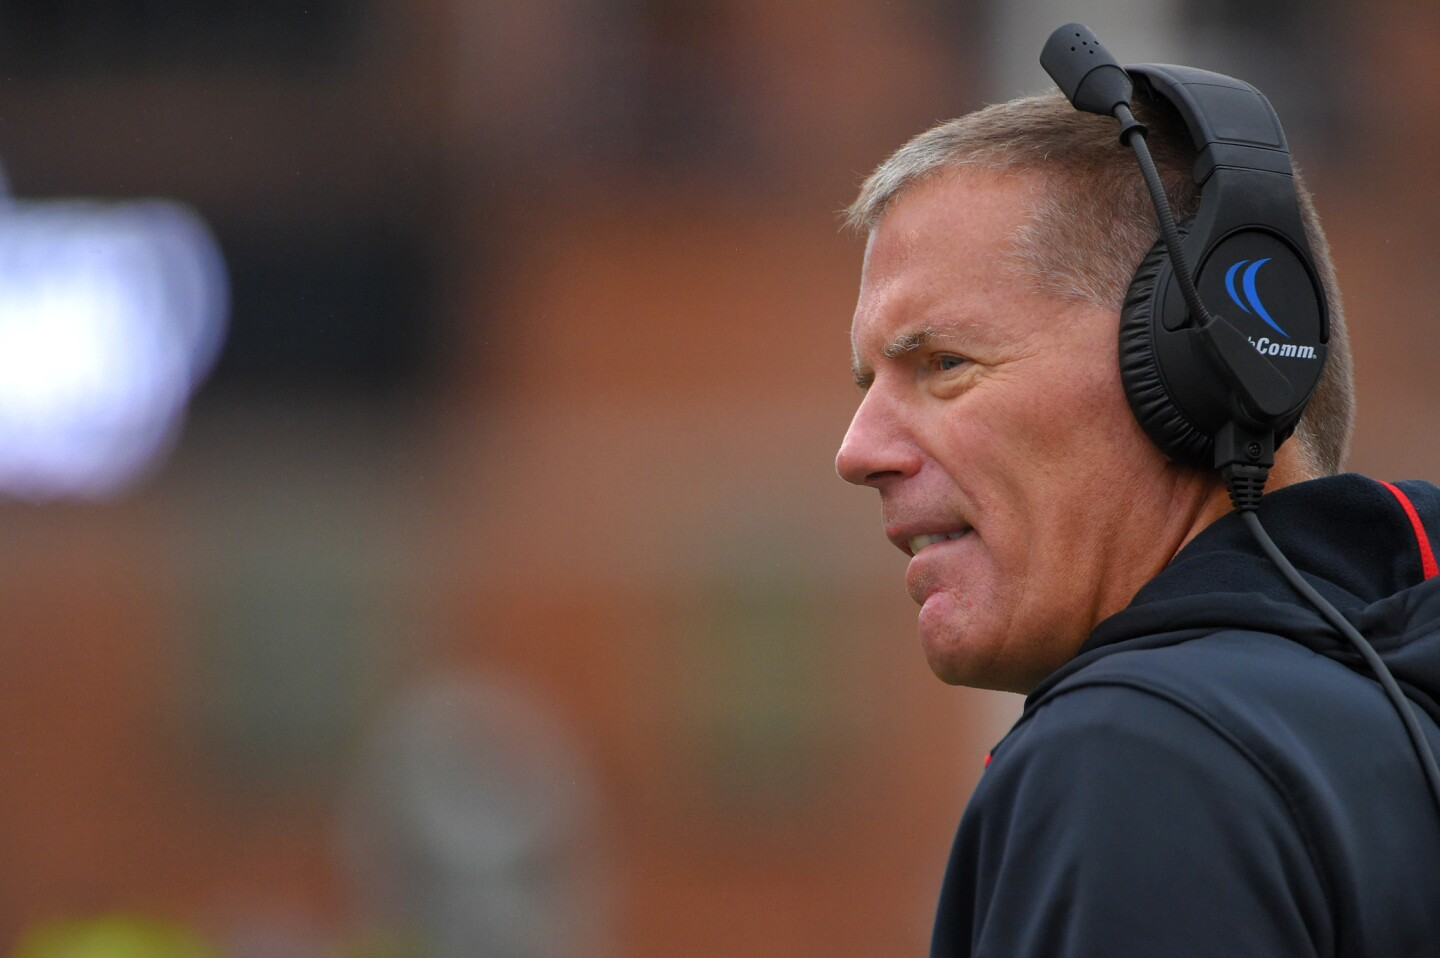 Maryland coach Randy Edsall during the first quarter at Byrd Stadium.